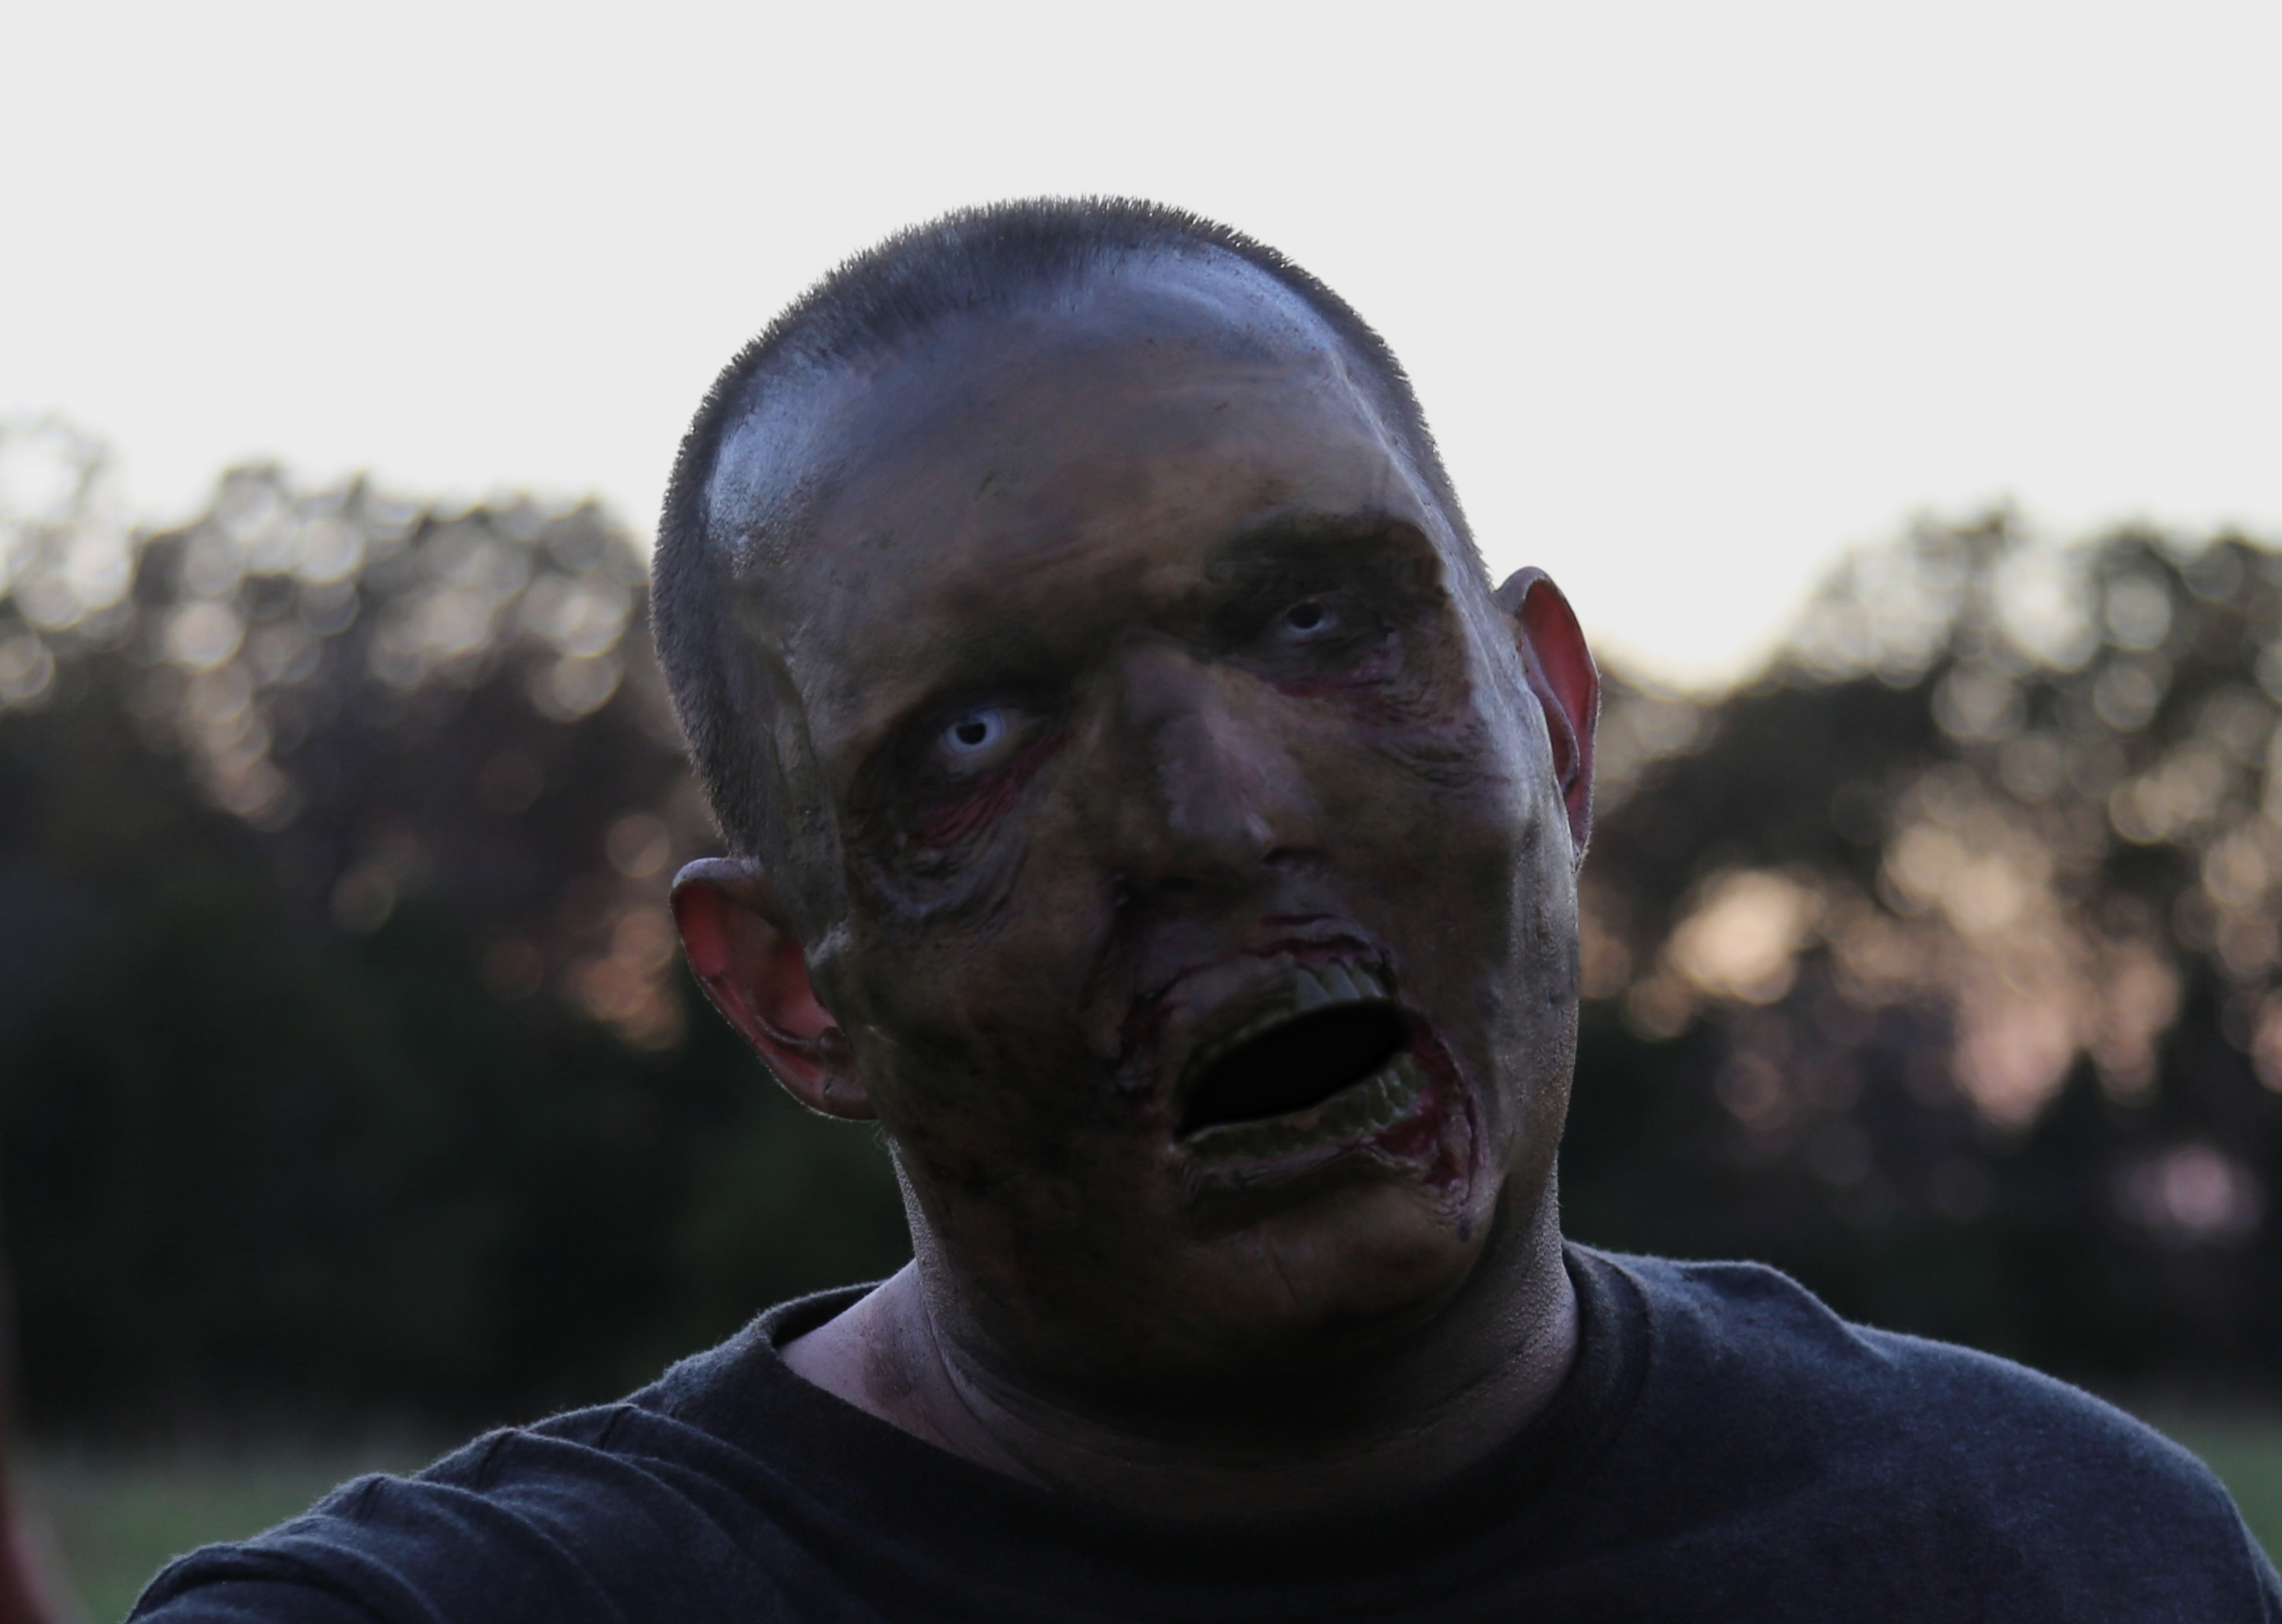 Mike Appel Zombie Pic 003 Revised Close Up